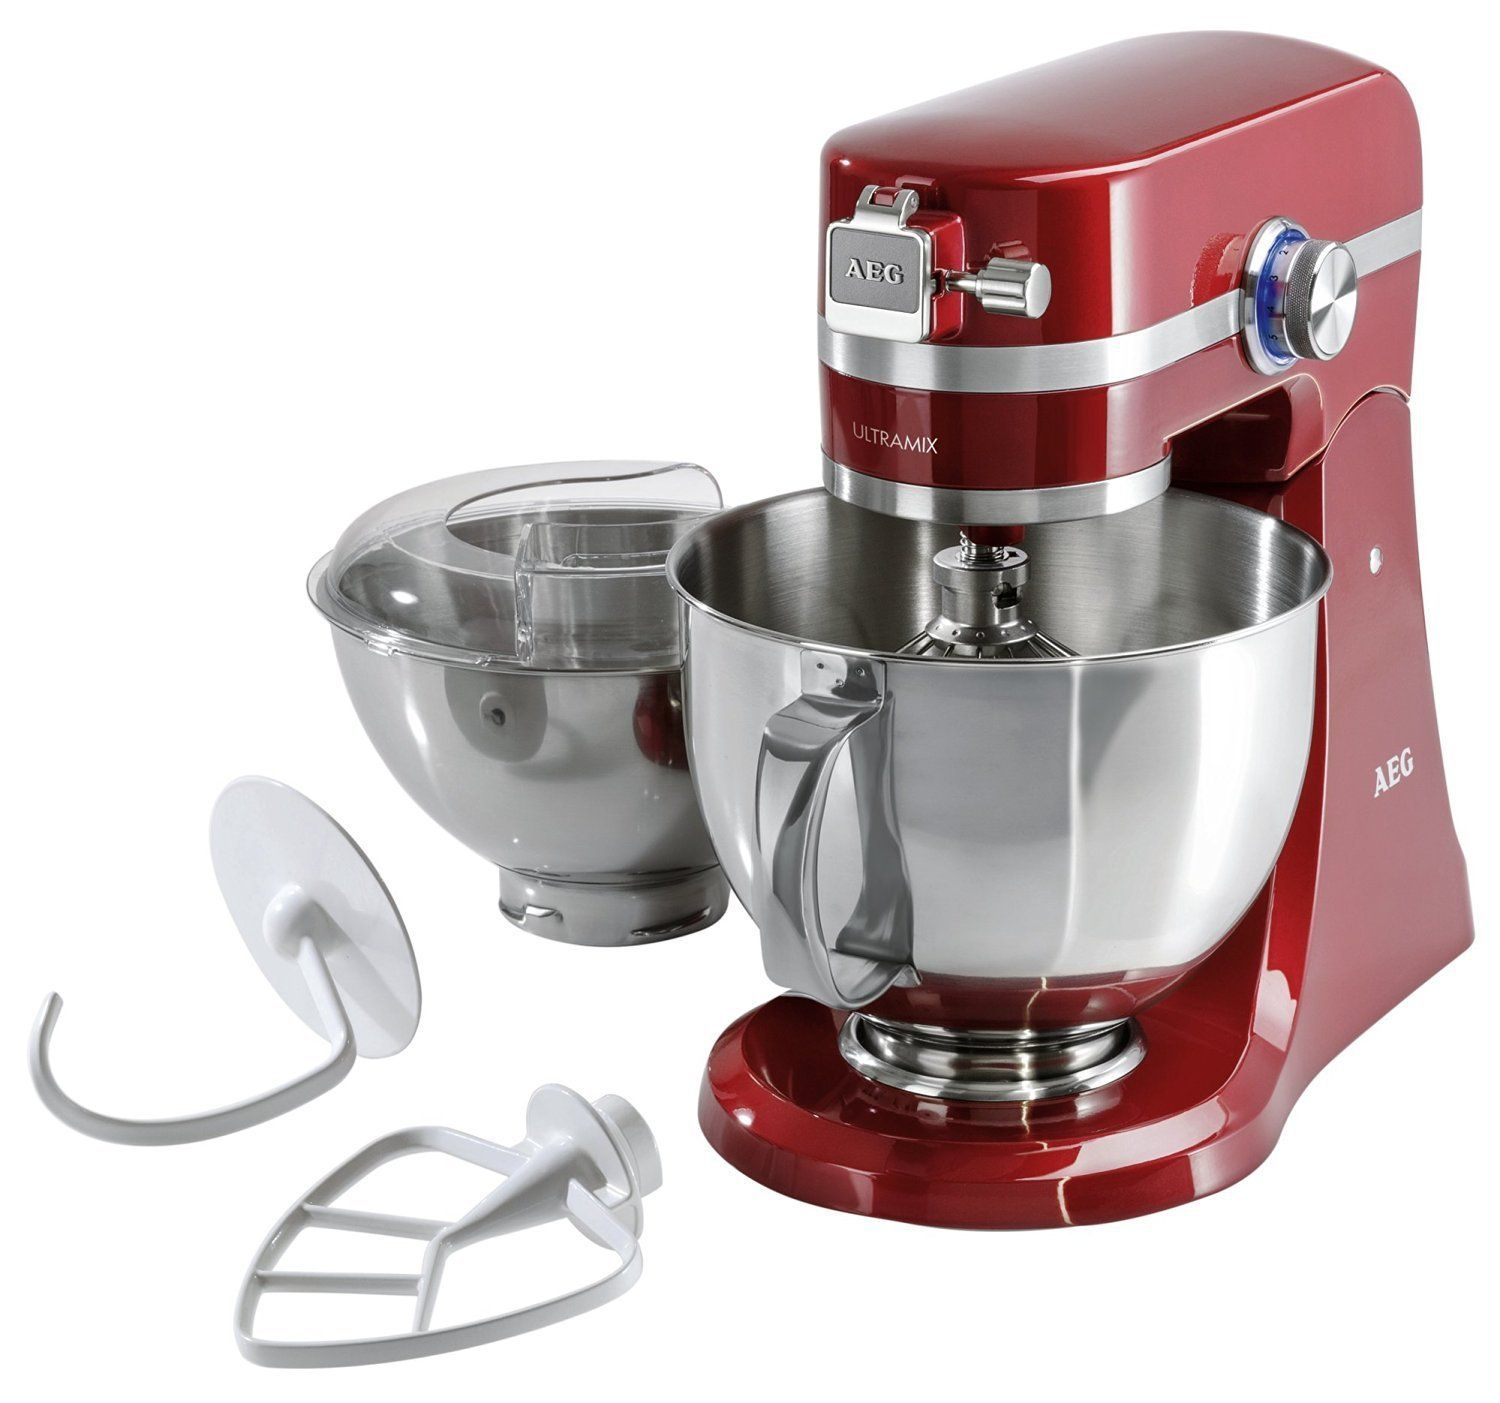 Harga Jual Kenwood Kmm770 Premier Major Stand Mixer Update 2018 Kartu Perdana Loop Trial Donamp039t Buy Aeg Km4000 Ultramix Kitchen Machine Food Reviewed Best